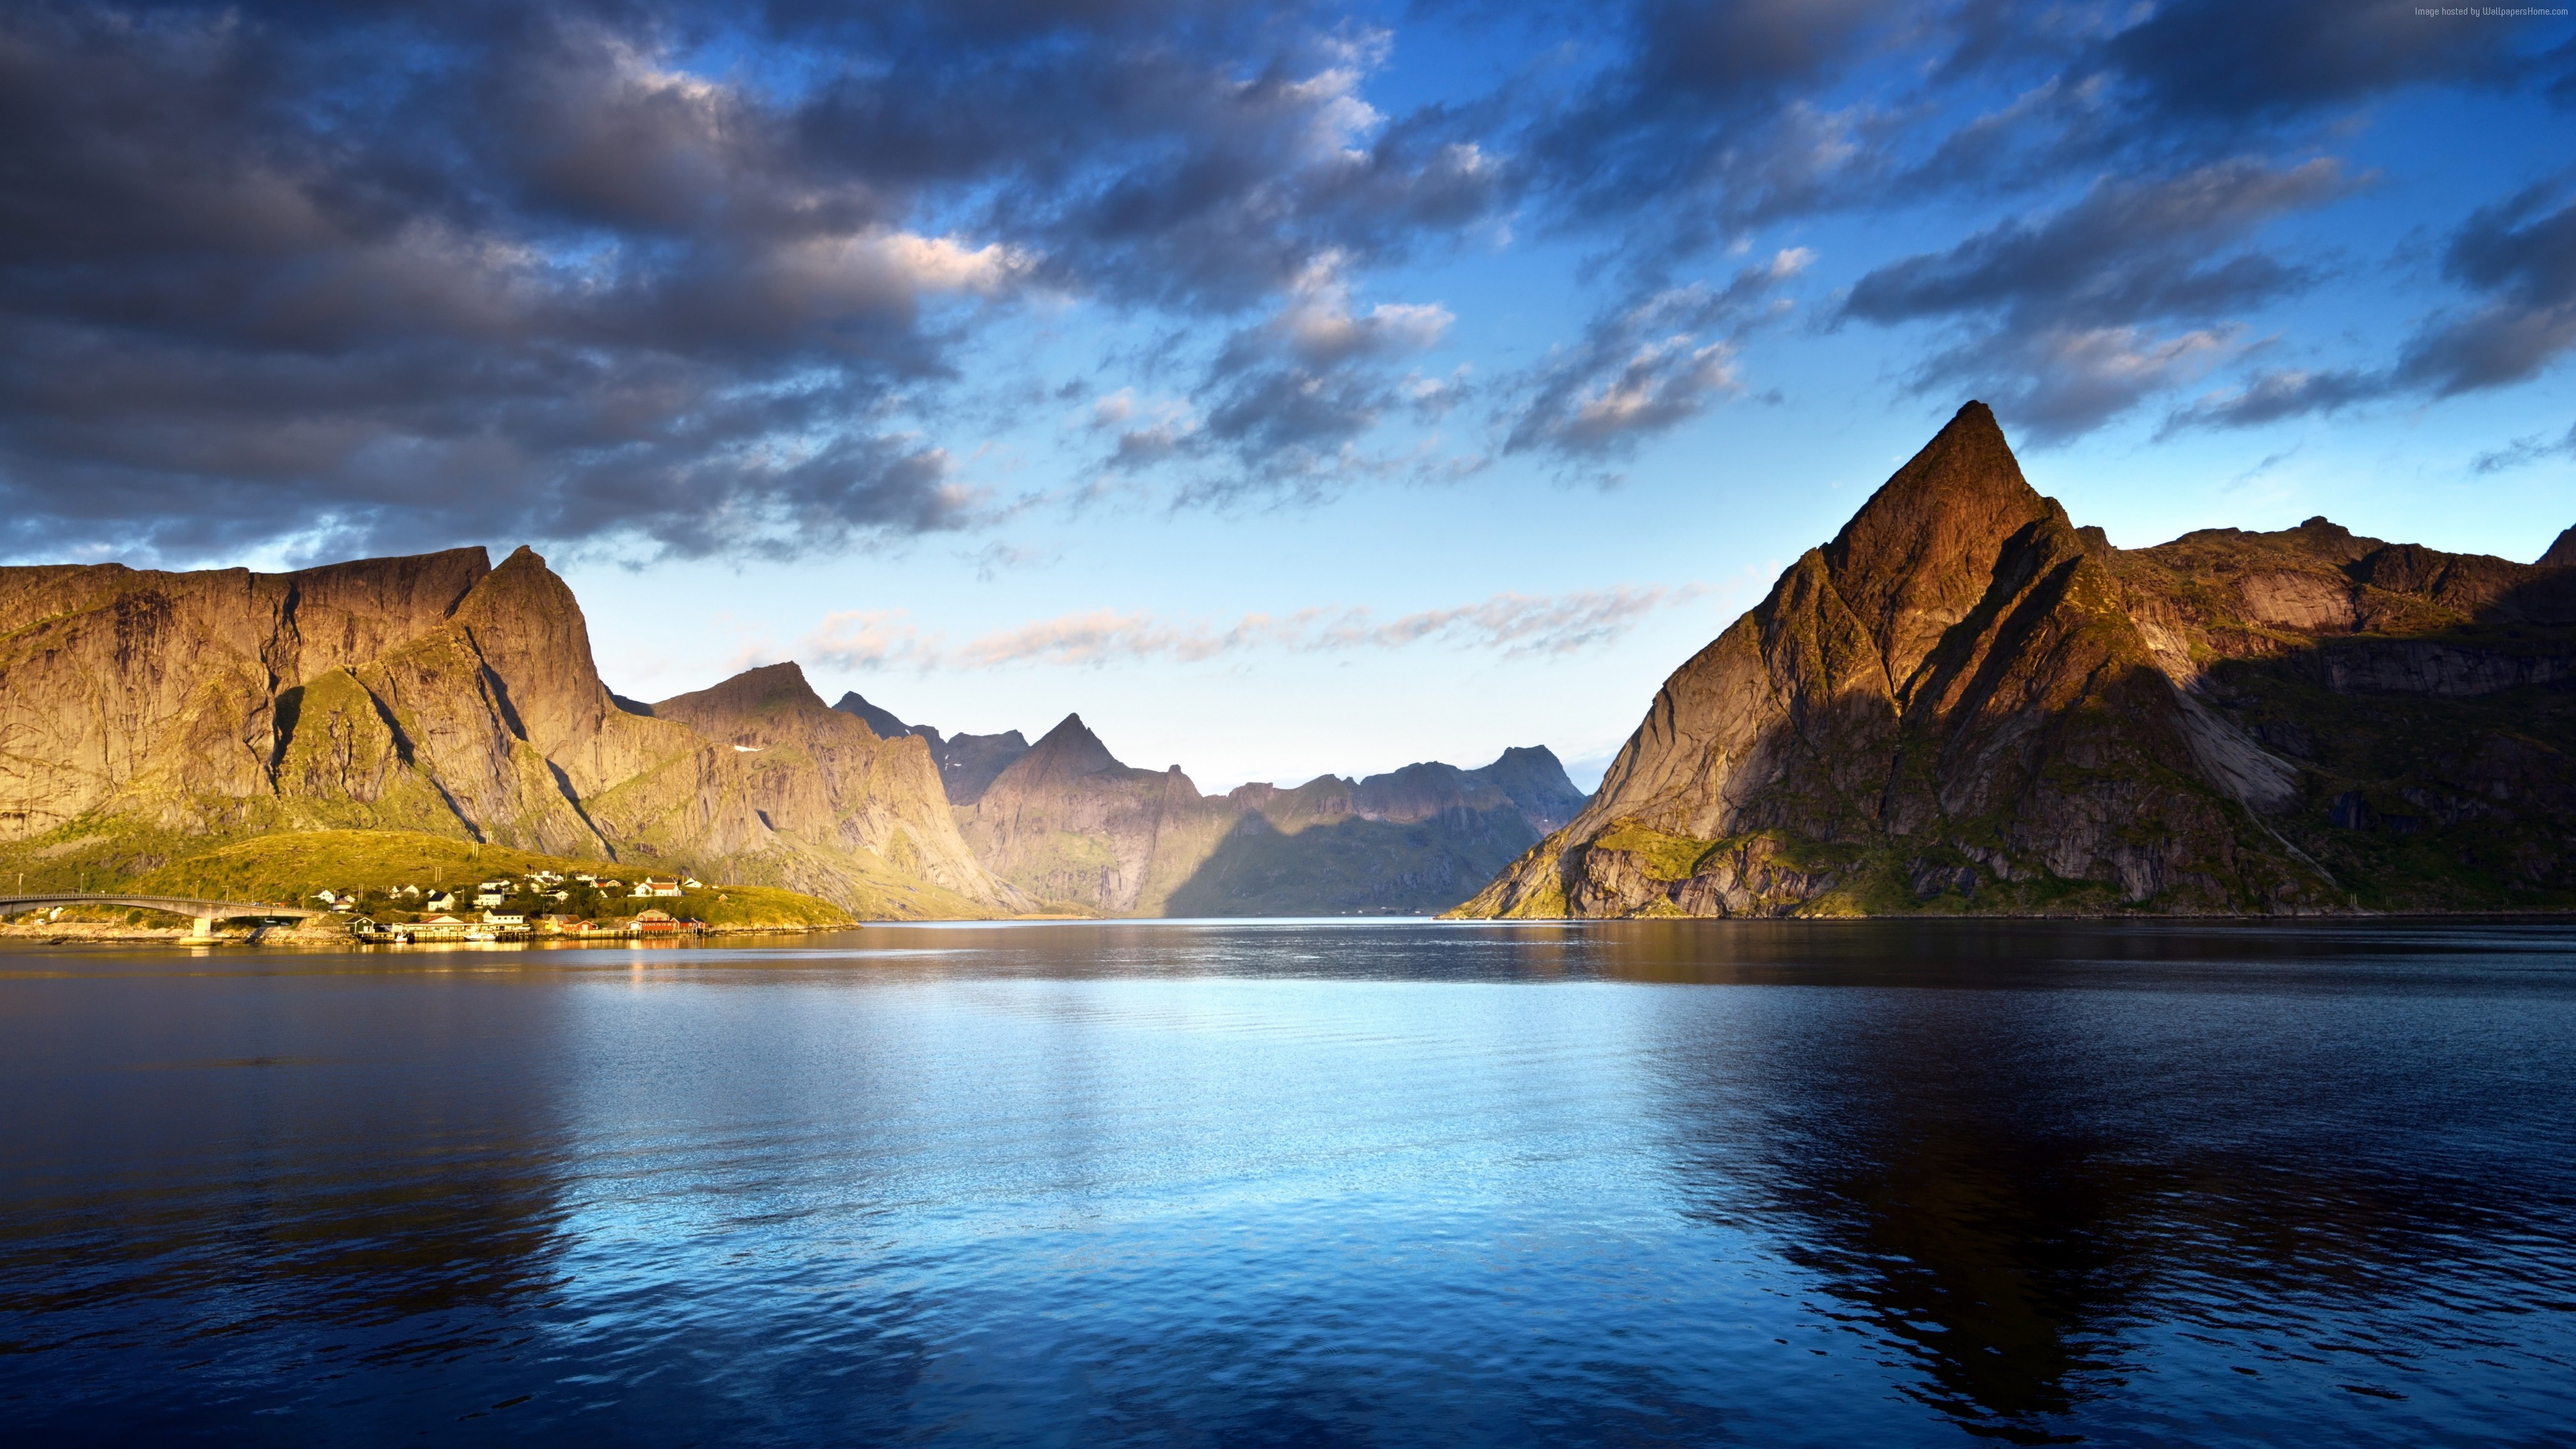 Wallpaper Norway, Lofoten islands, Europe, Mountains, sea, clouds, 5k, Nature